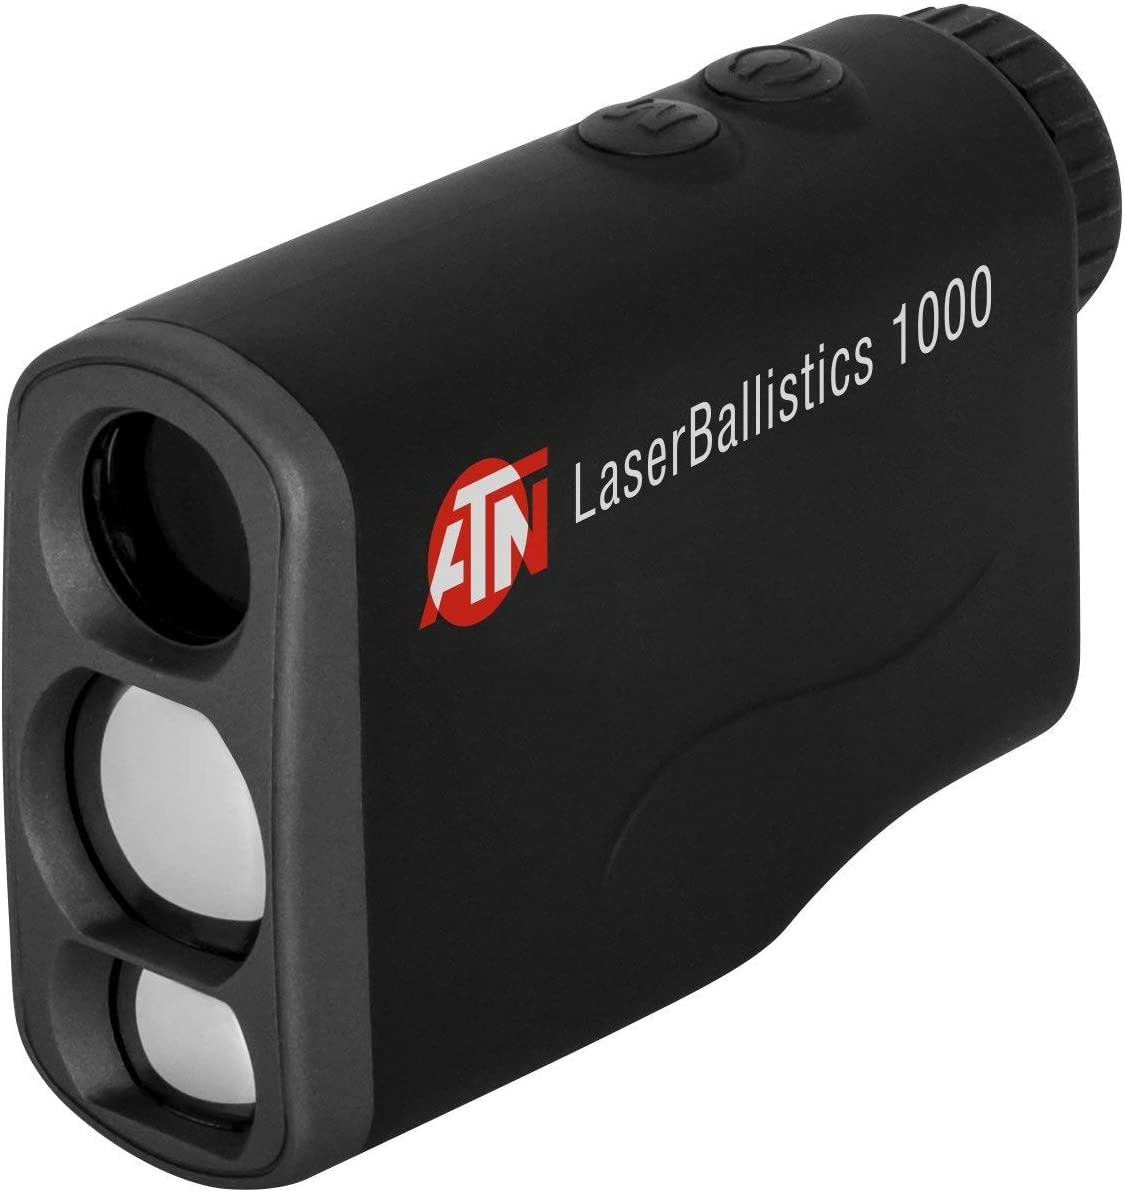 ATN Laser Ballistics Range Finder with Bluetooth Renewed